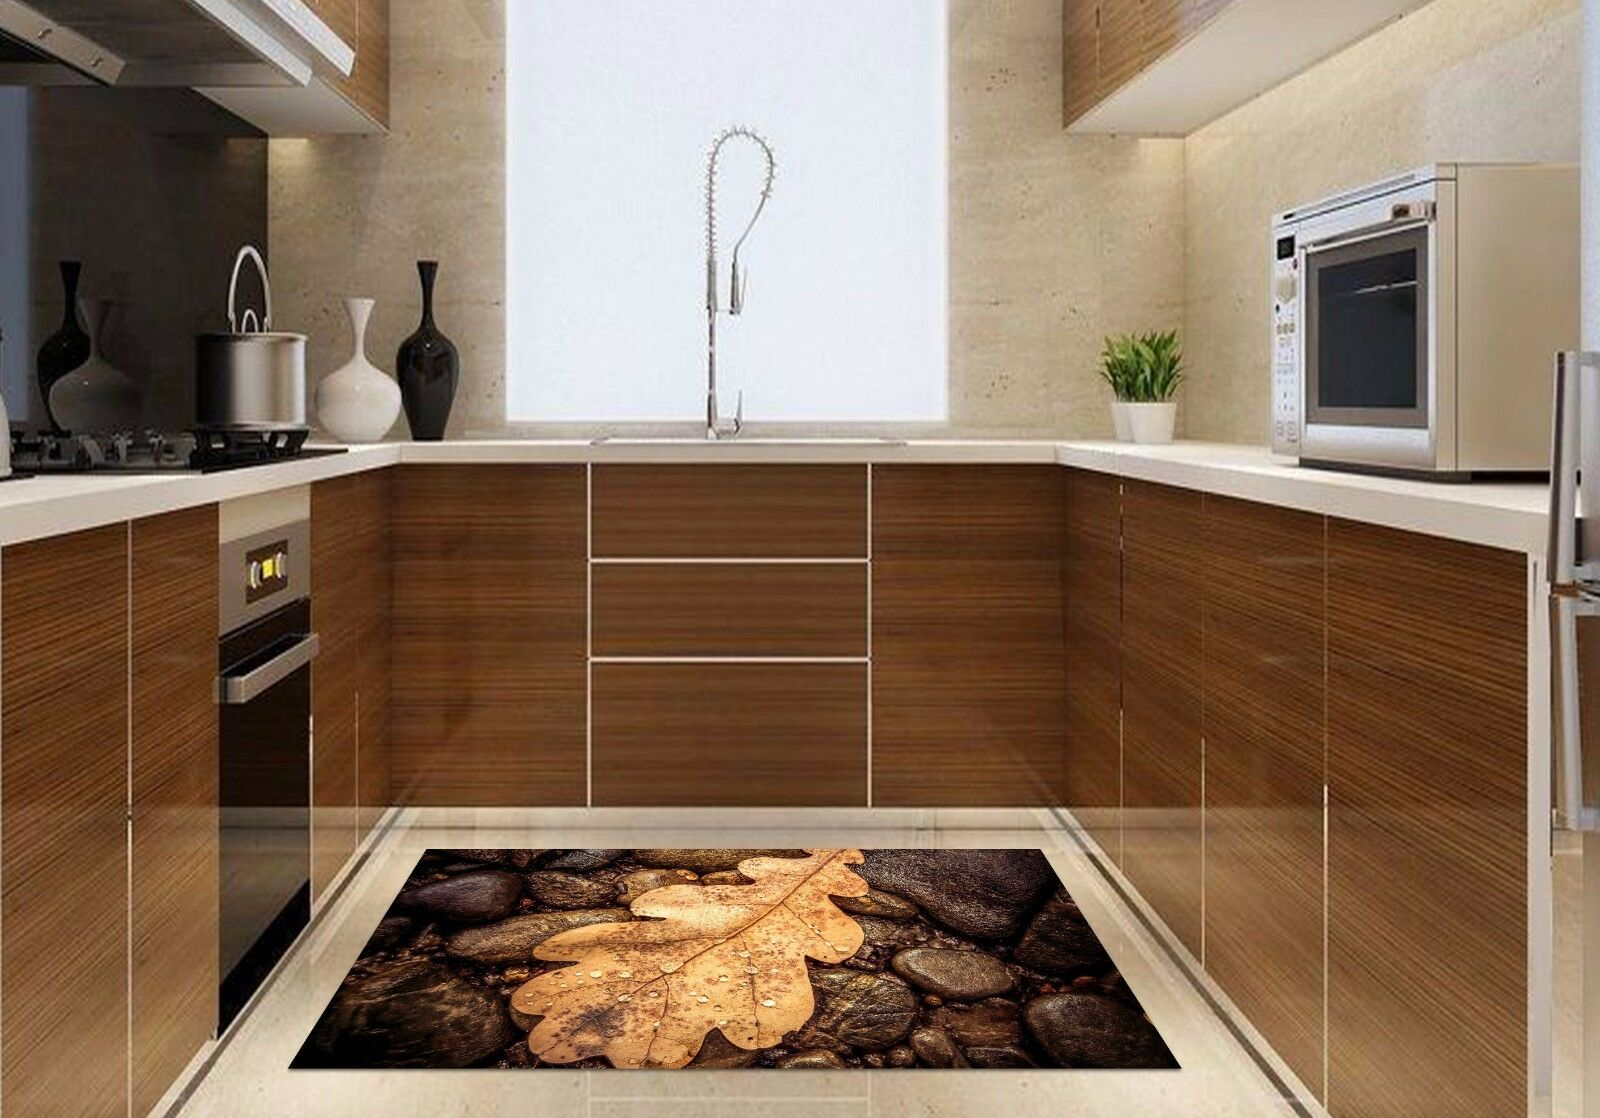 3D Leaves Stone 8 Kitchen Mat Floor Murals Wall Print Wall AJ WALLPAPER AU Carly